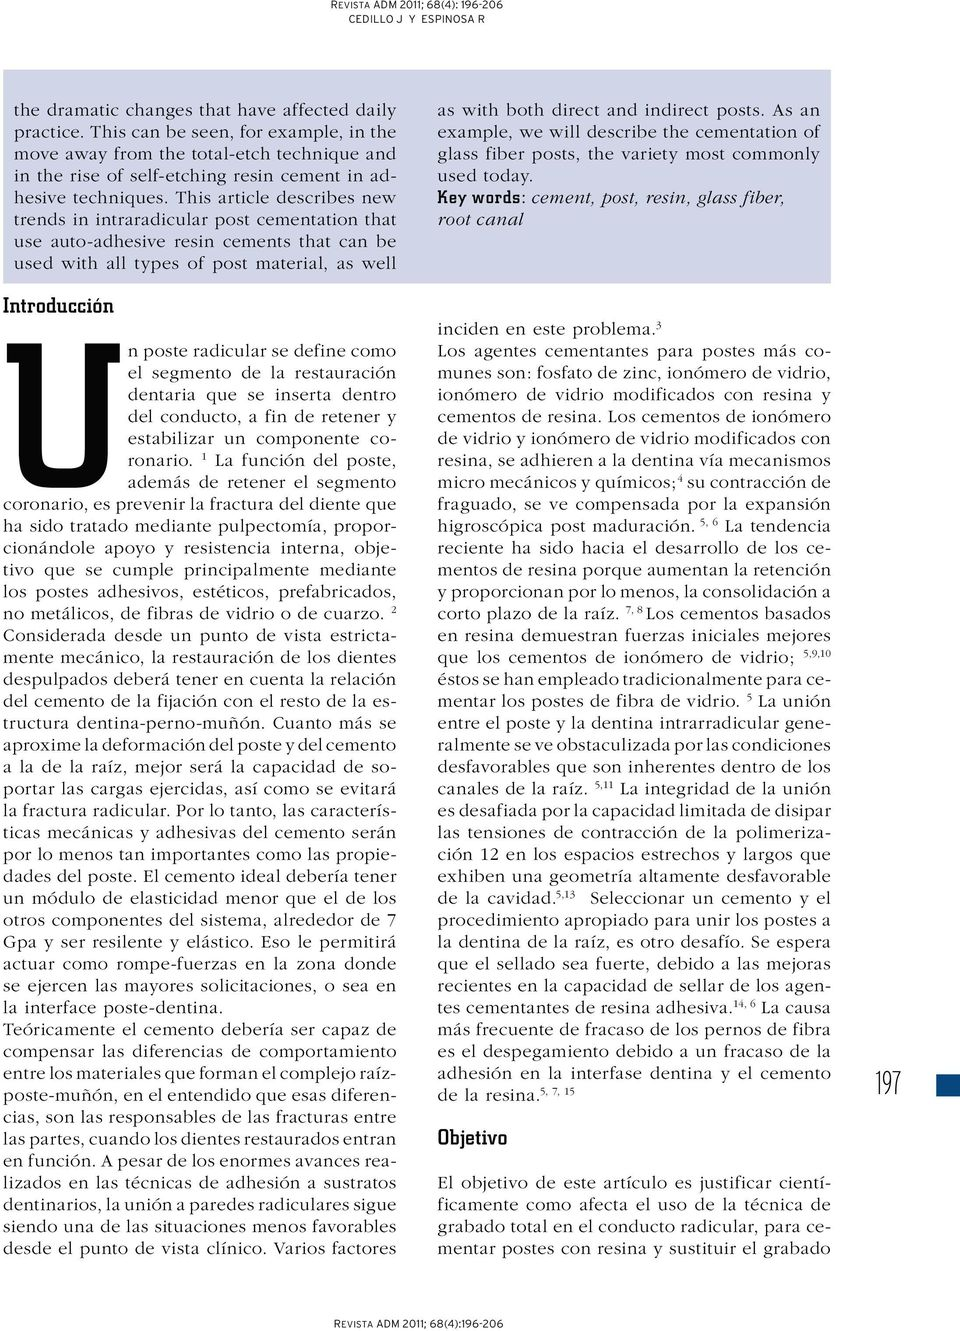 This article describes new trends in intraradicular post cementation that use auto-adhesive resin cements that can be used with all types of post material, as well Introducción Un poste radicular se